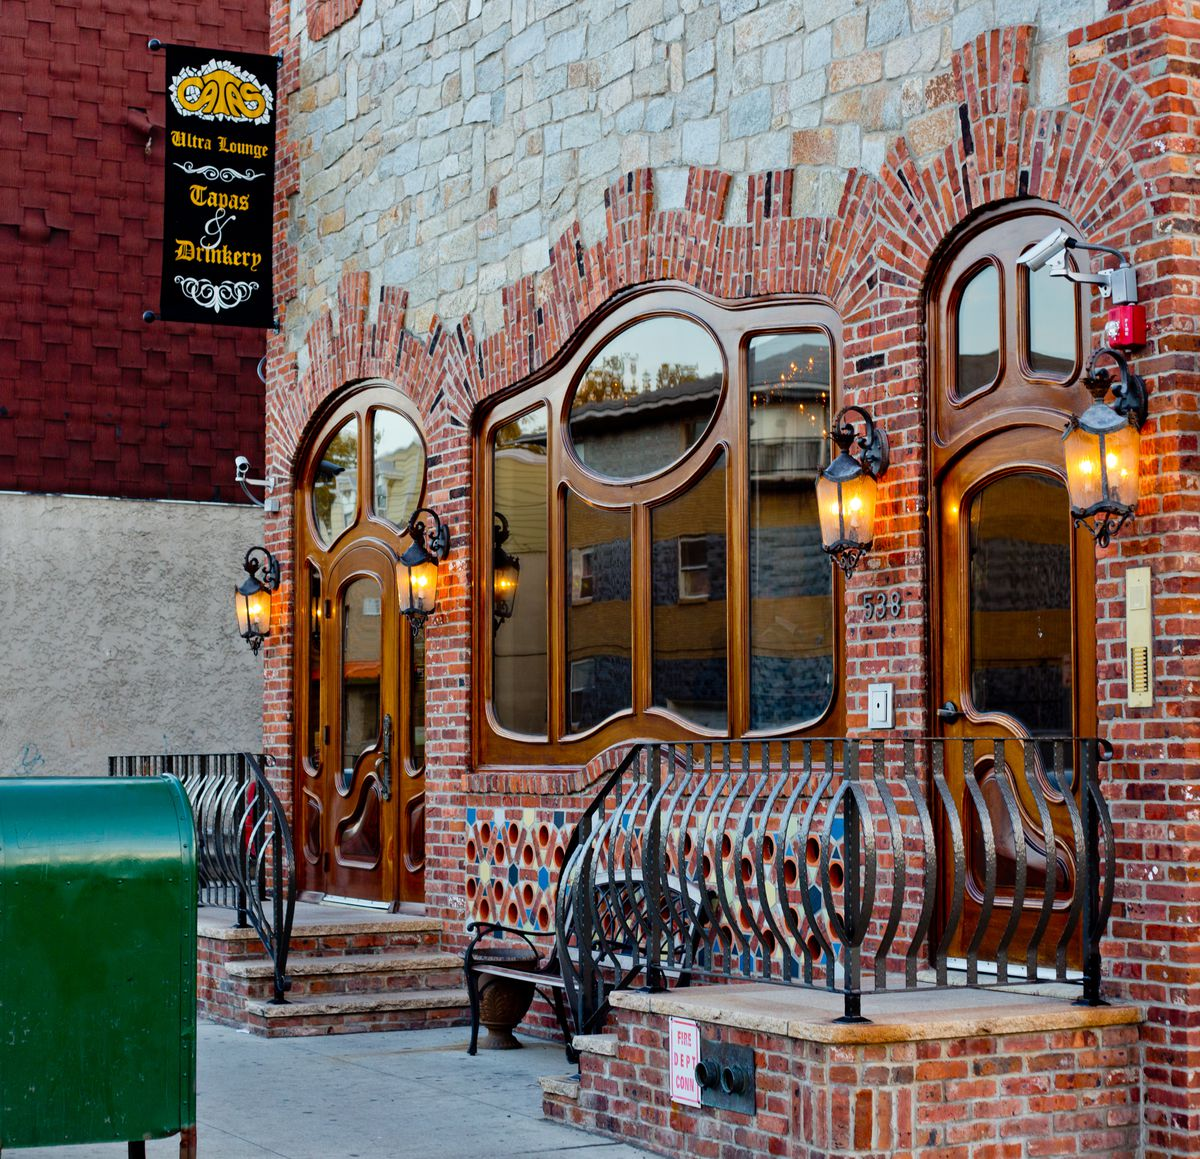 Catas Restaurant Is A Relatively New Eatery On Market Street That S Slightly Removed From The Main Drag Iberian Inspired Etizers Like Pequillo